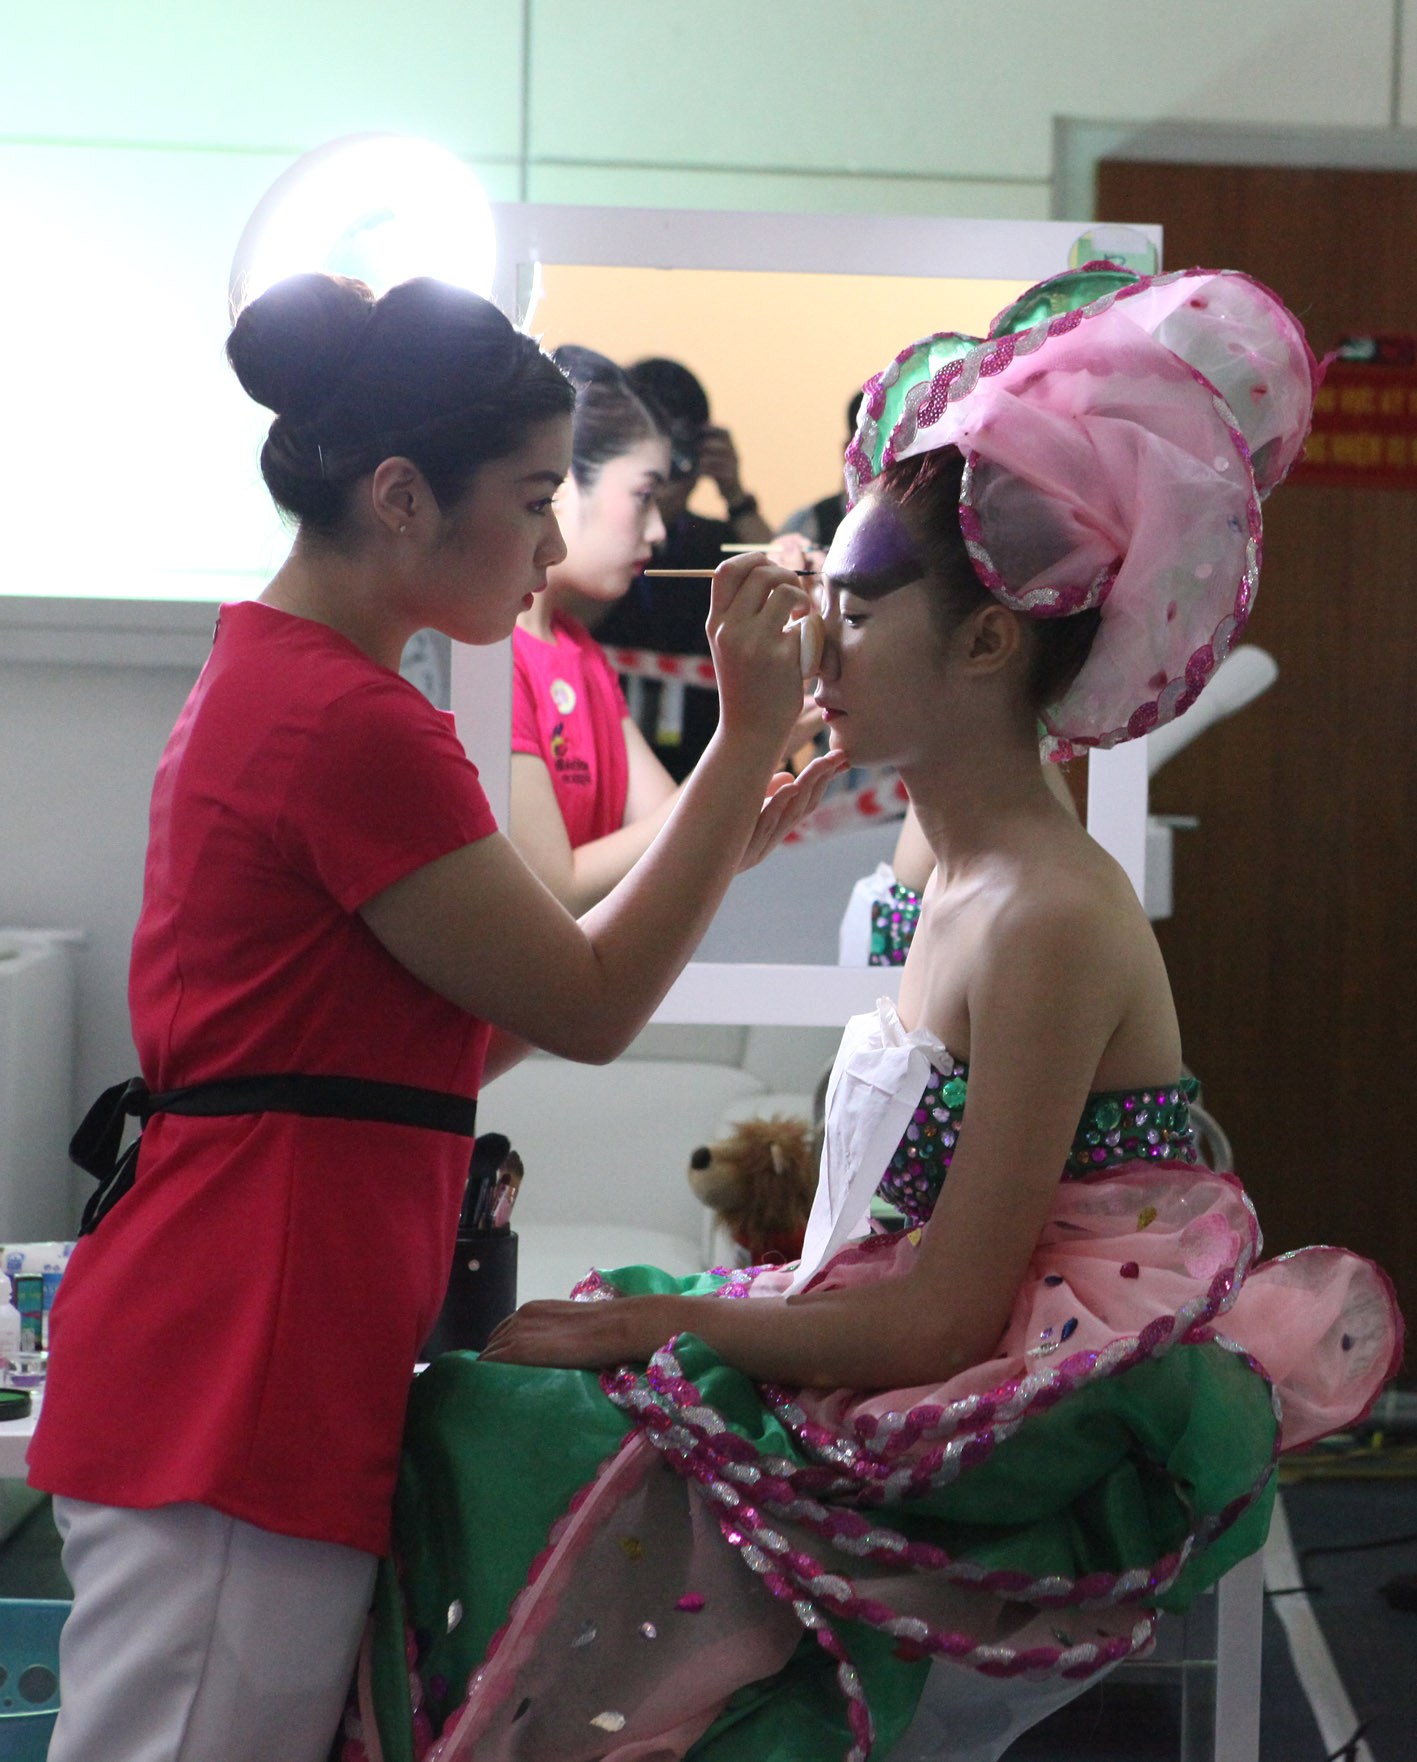 Contestants of beauty care, Anh Tuan – Vietnam News Agency